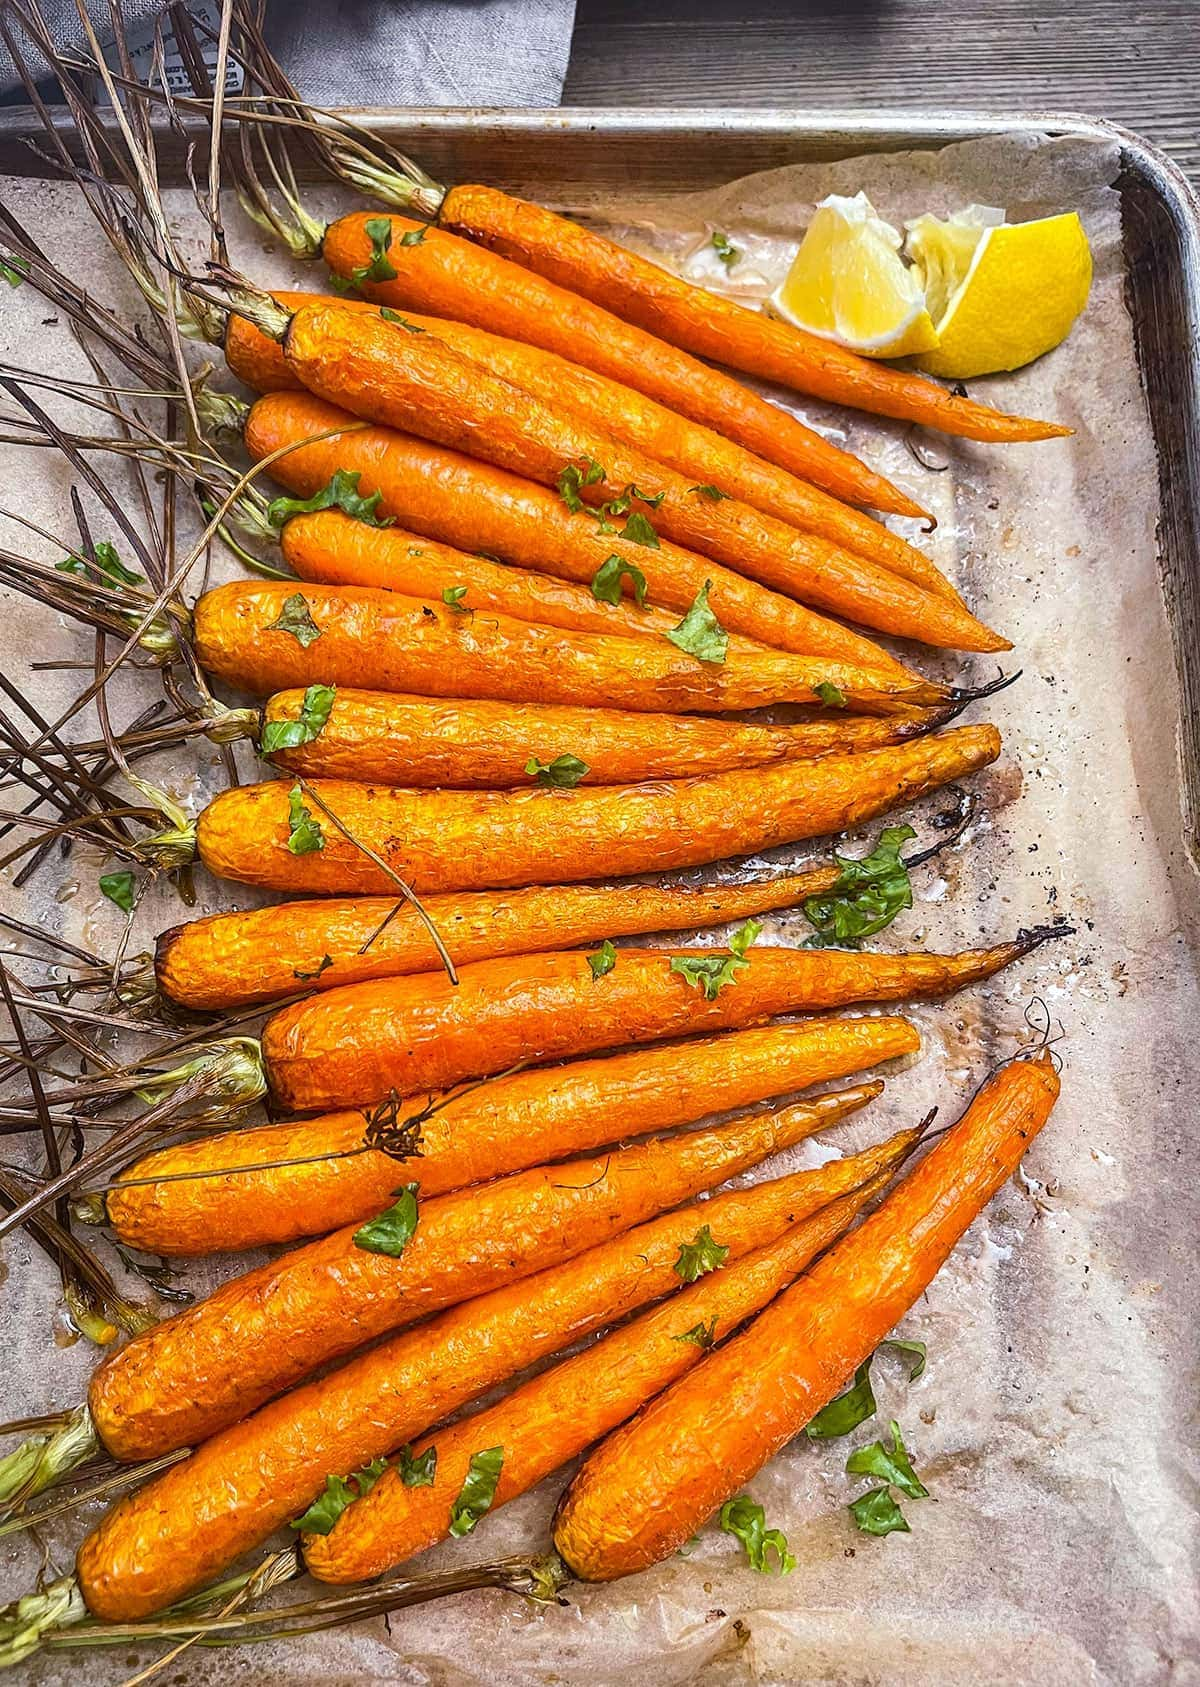 a sheet pan with parchment paper and a row of air fried carrots garnished with parsley and lemon